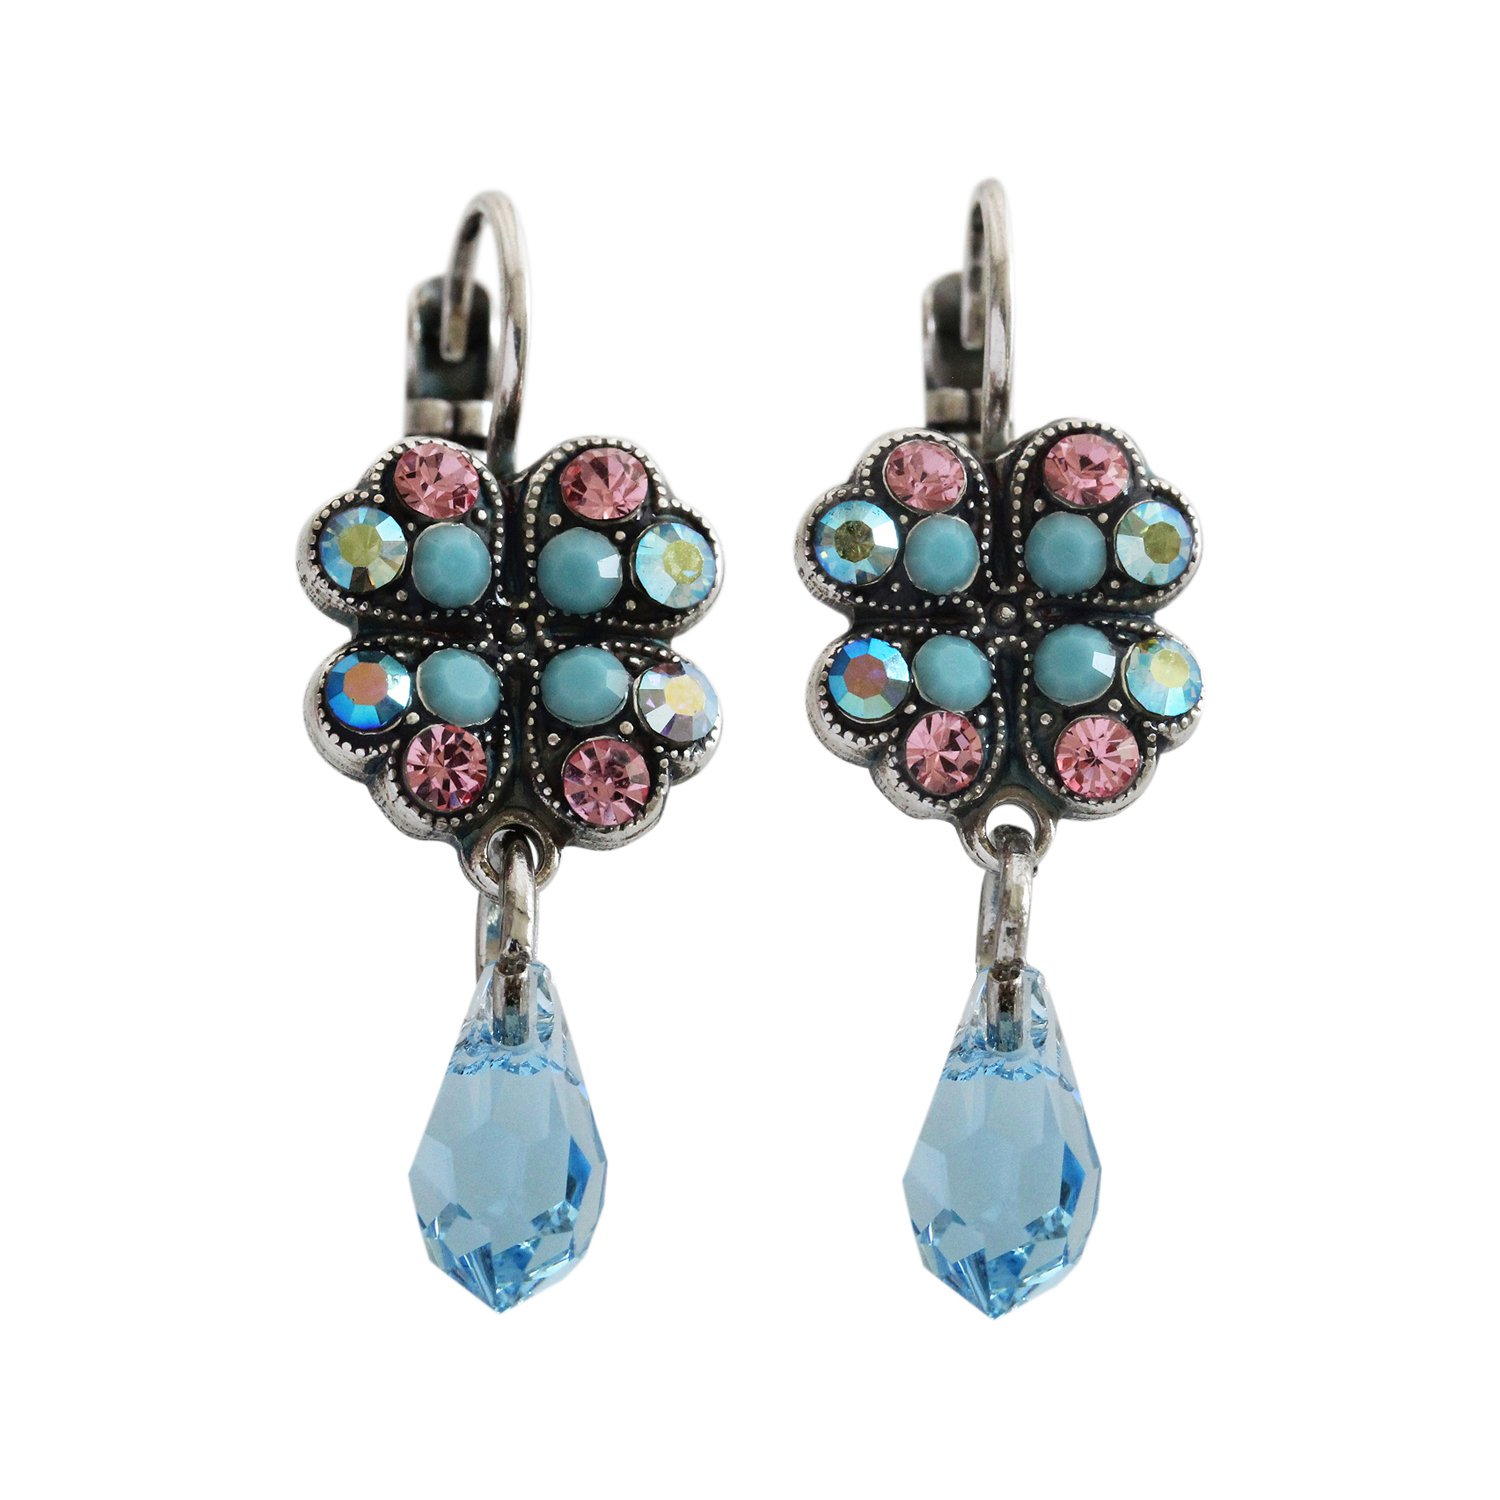 Mariana Summer Fun Silvertone Clover Dangle Drop Crystal Earrings, Pink Blue Colorful 1040/3 3711